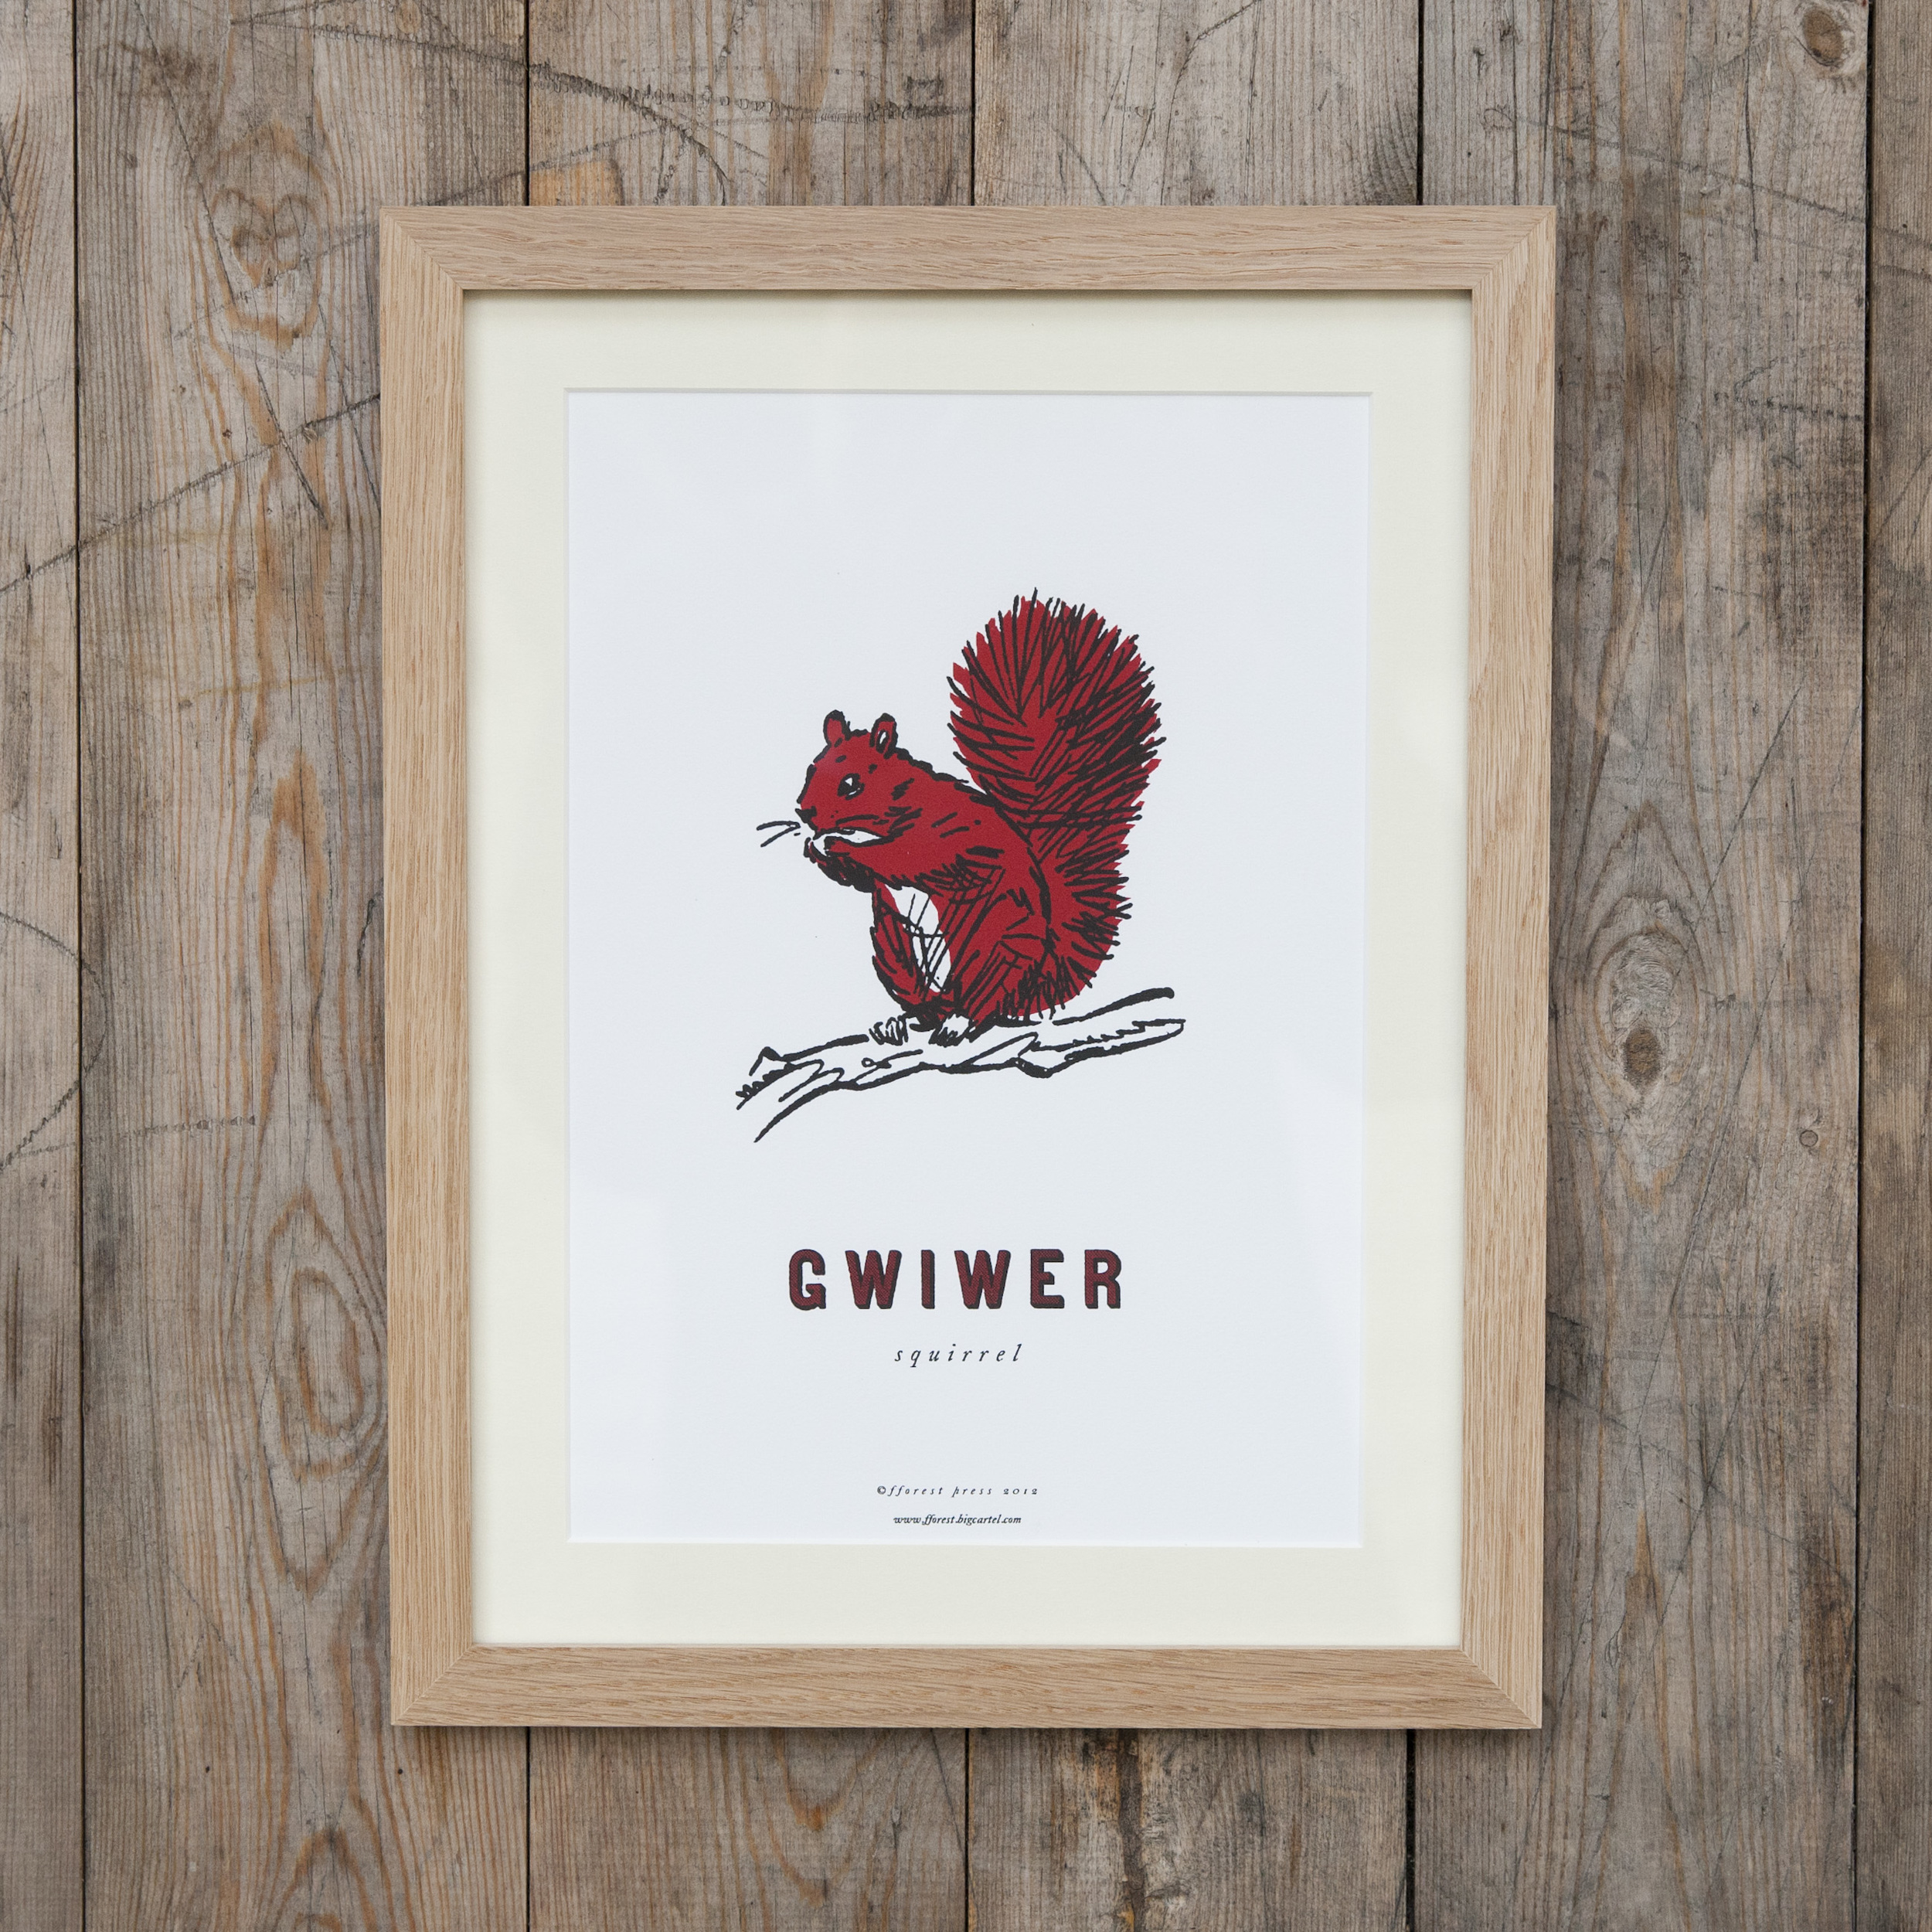 Cymraeg y fforest Prints, £15   Series of prints illustrating Welsh words at the heart of fforest.This little fellow is 'gwiwer', or squirrel. Fox (cadno) anddeer (ceirw) also available.